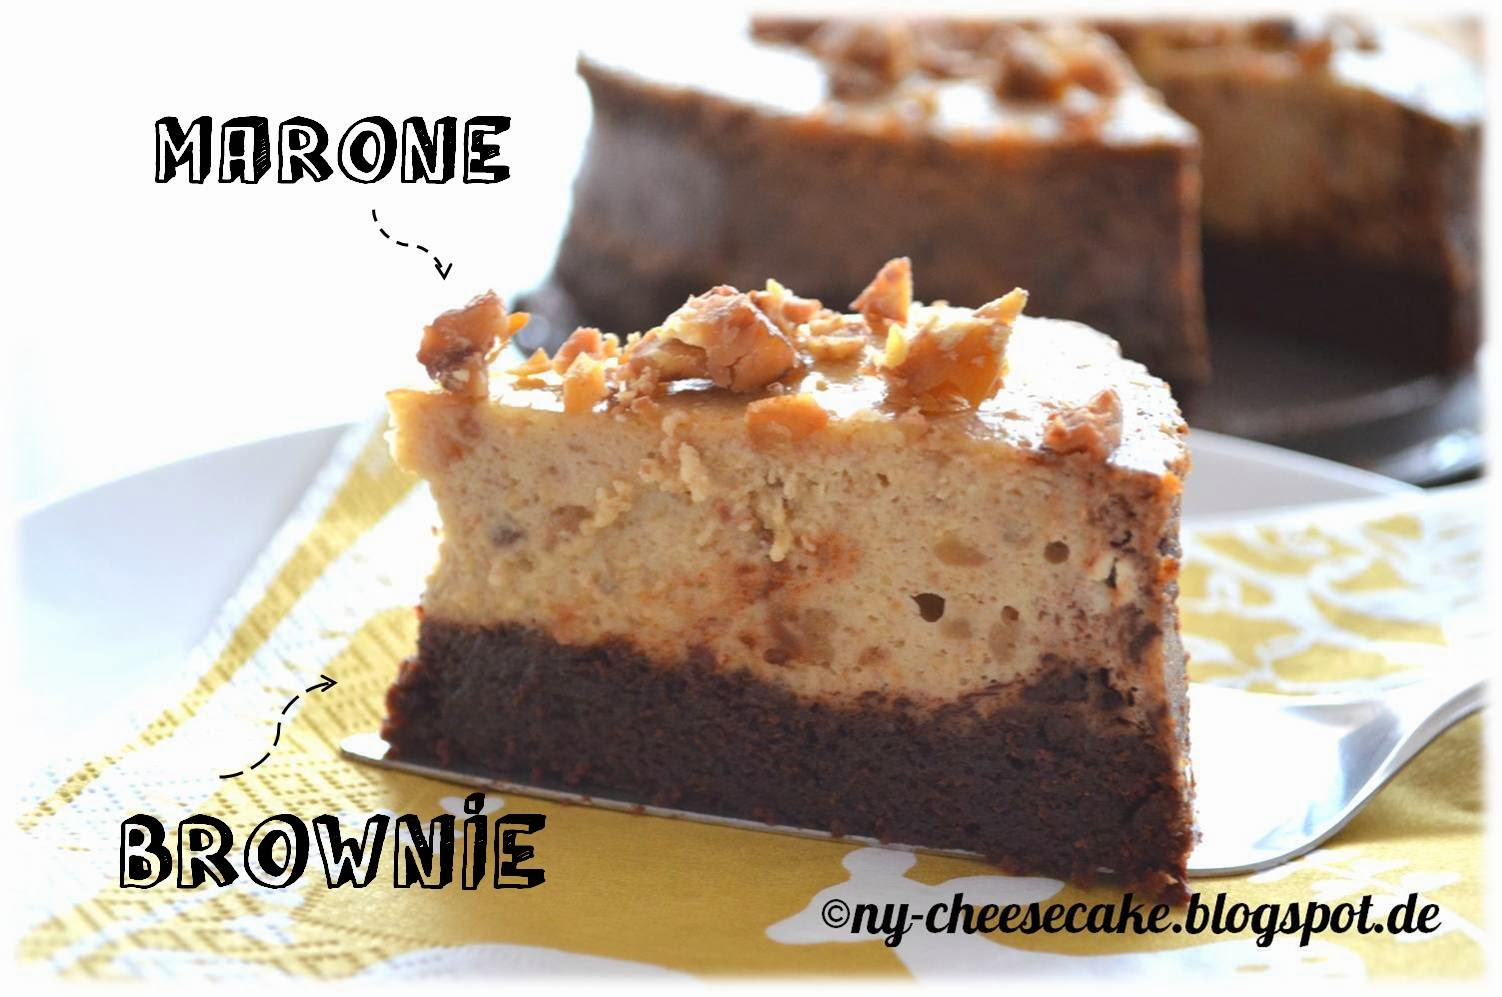 http://reihe11.com/2013/02/21/say-cheese-teil-5-maronen-cheesecake-auf-brownie-boden/